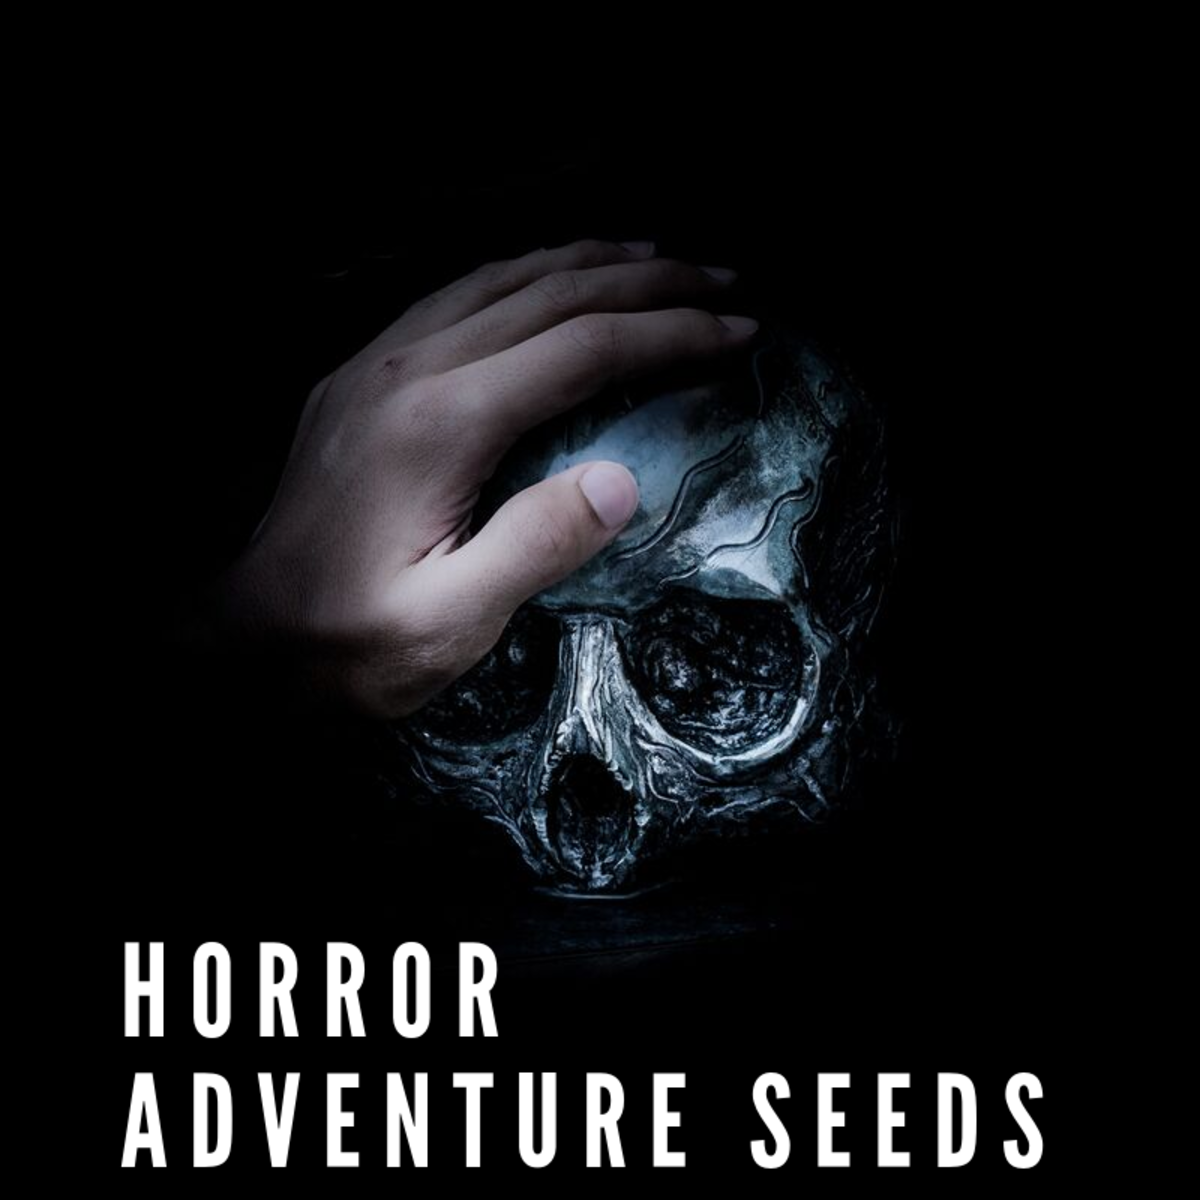 11 Horror Adventure Seeds